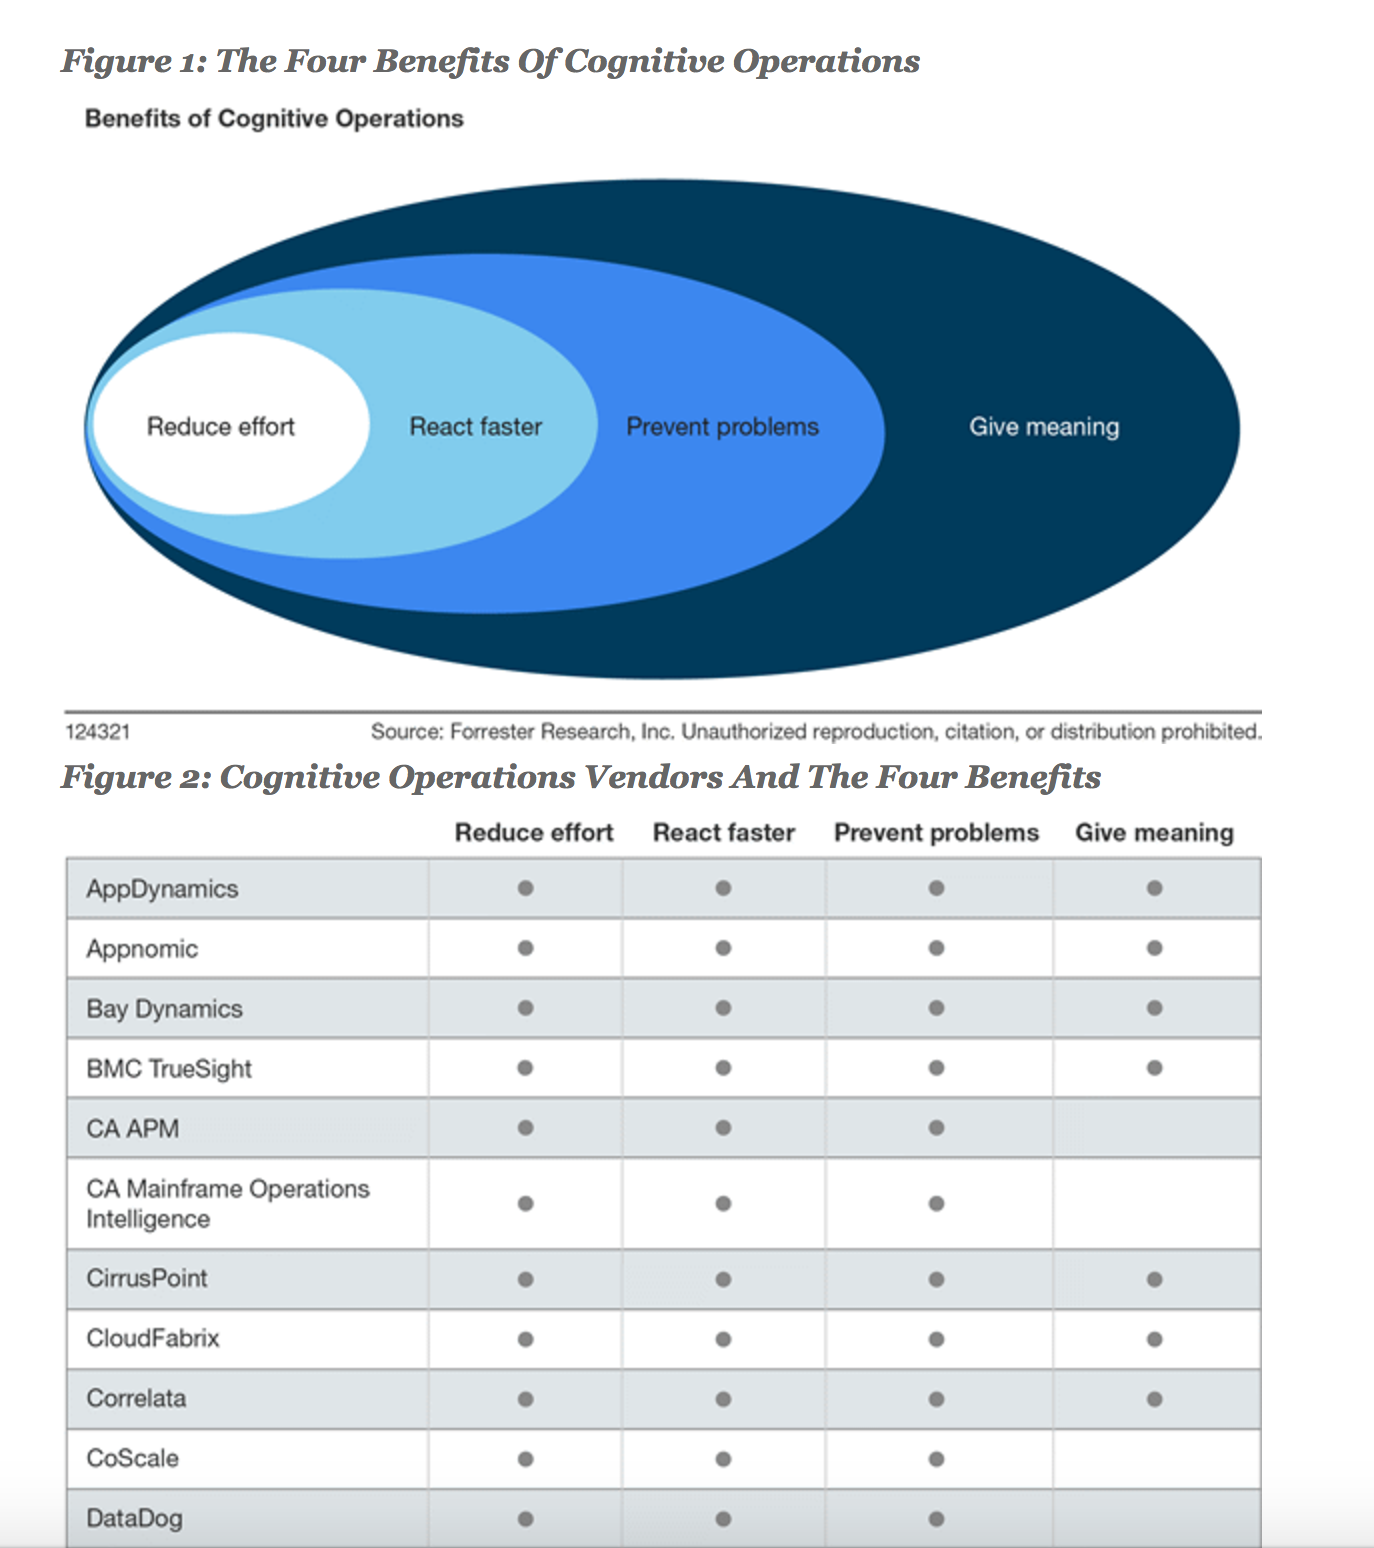 Forrester Vendor Landscape Report: The 4 Benefits of Cognitive Operations